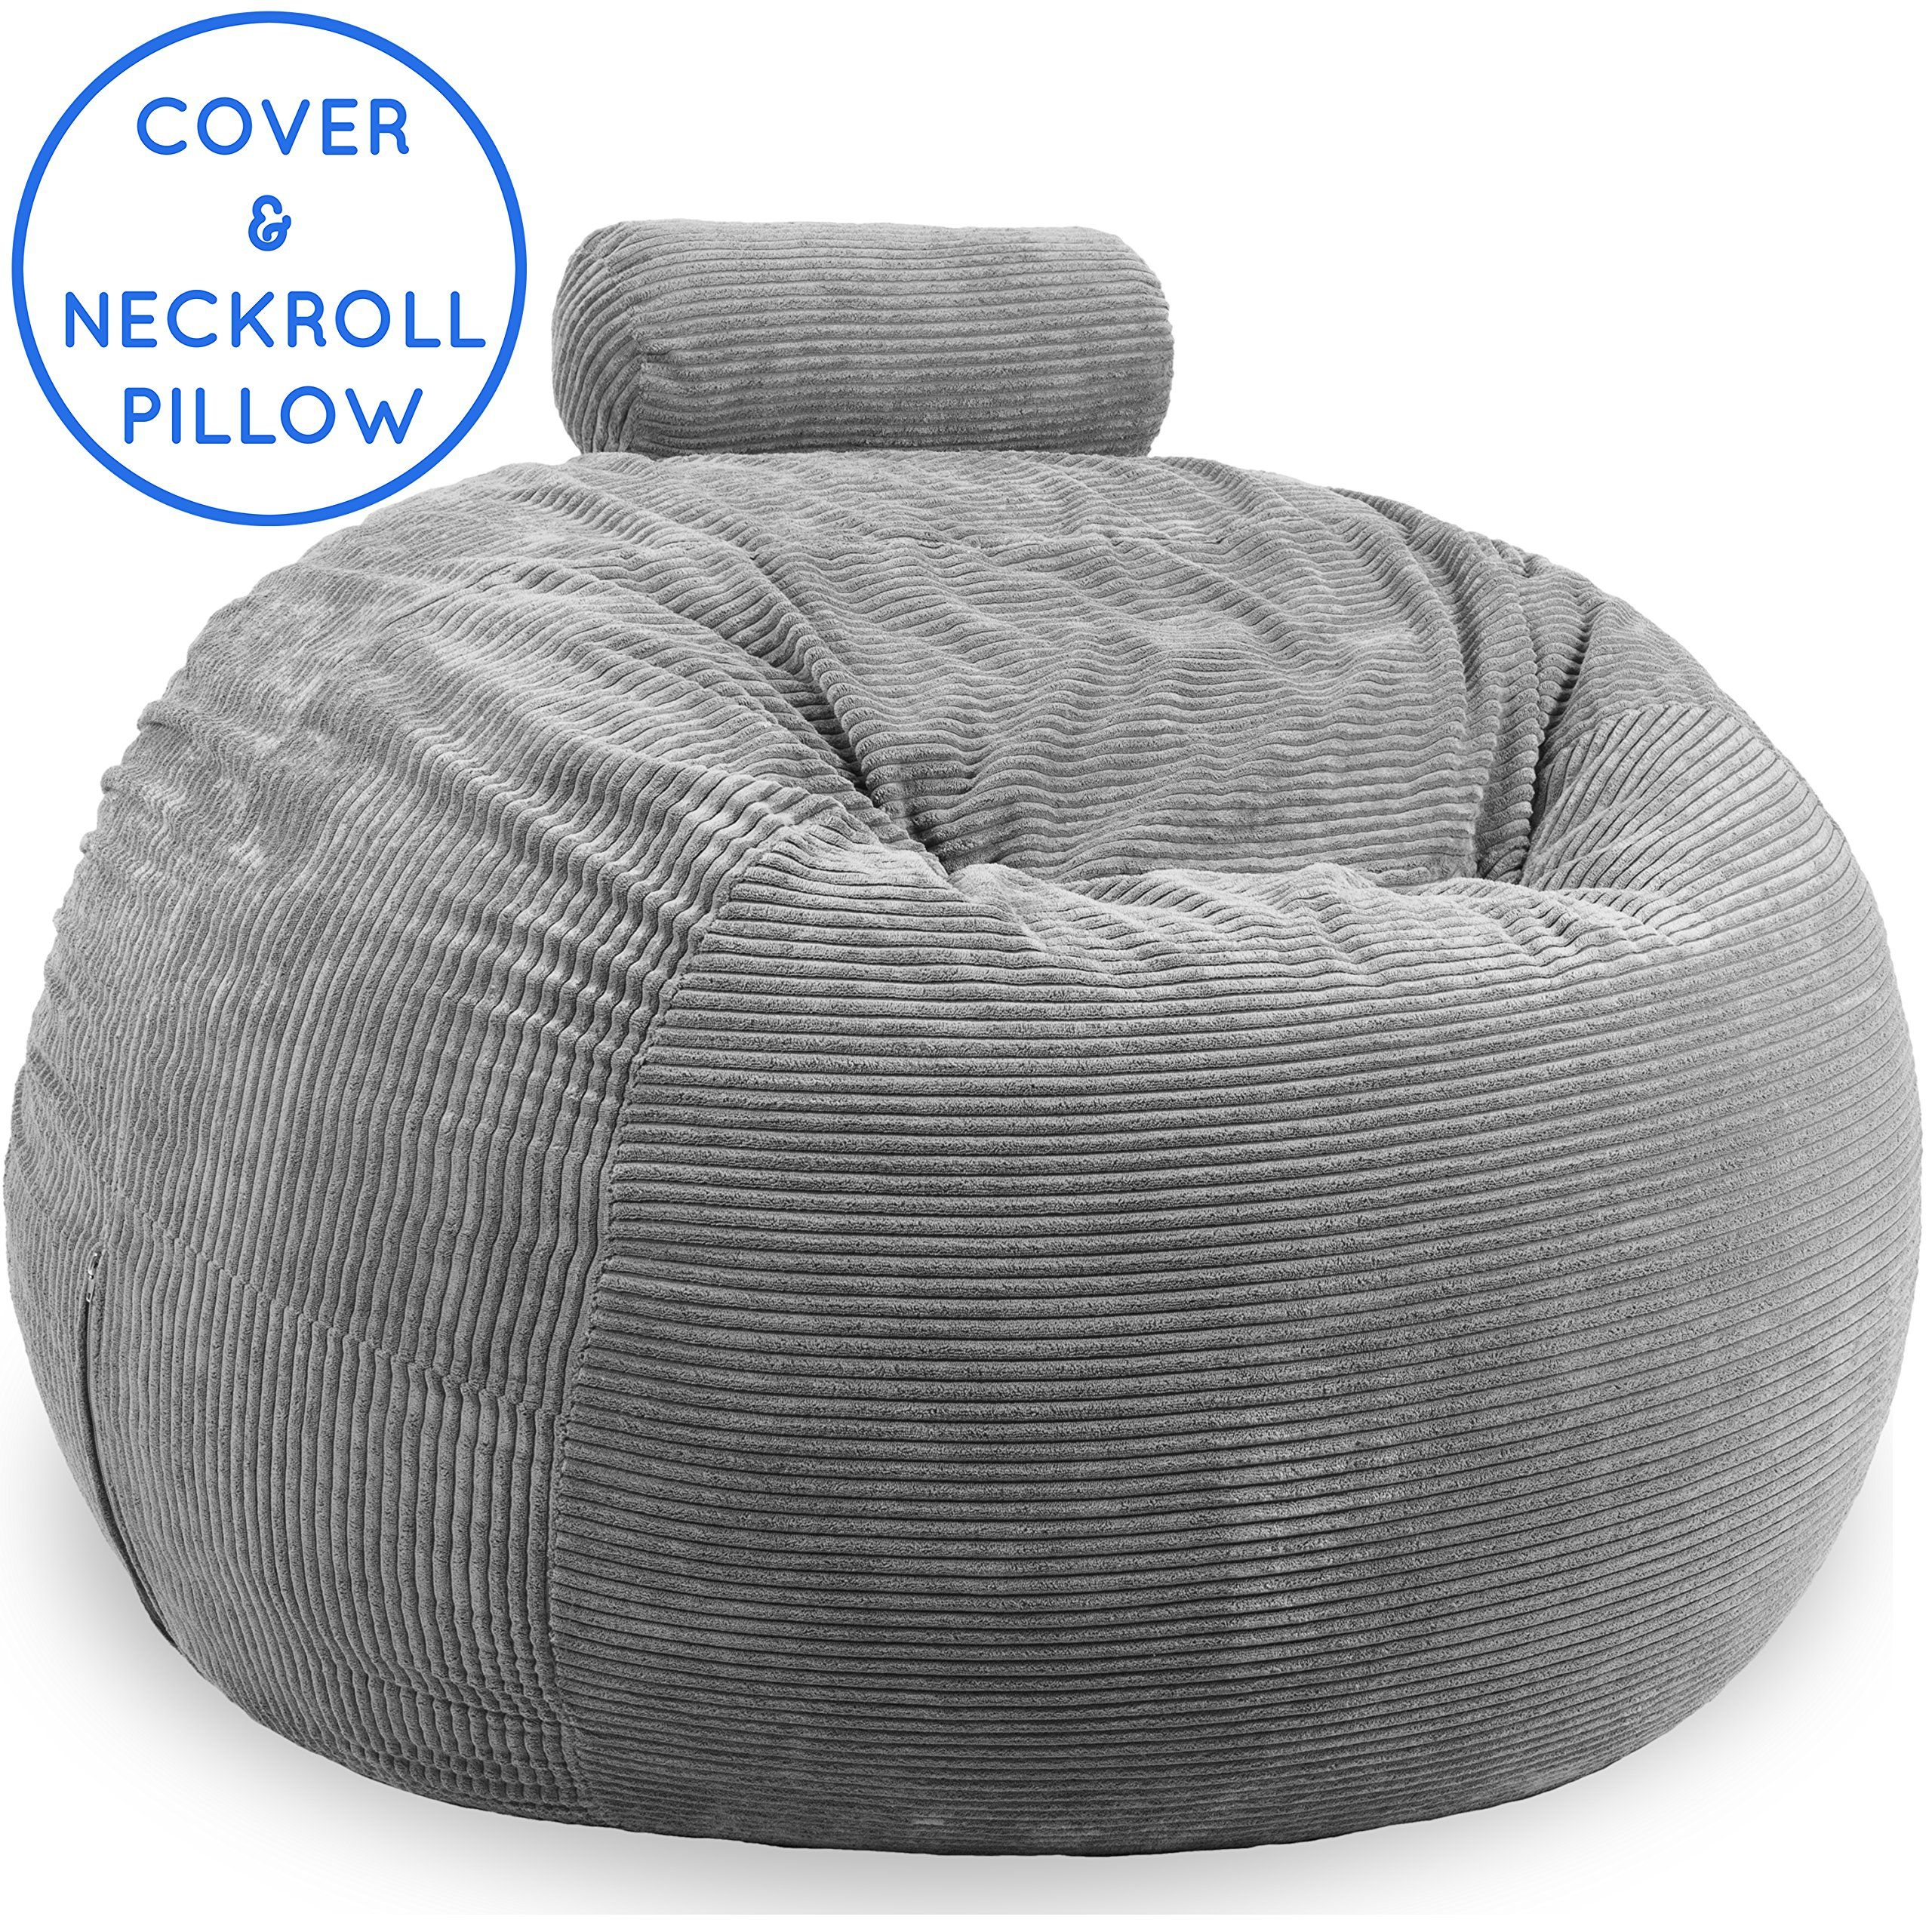 Premium Feet Replacement Cover Stuffed Neckroll Pillow In - Cozy chill bag